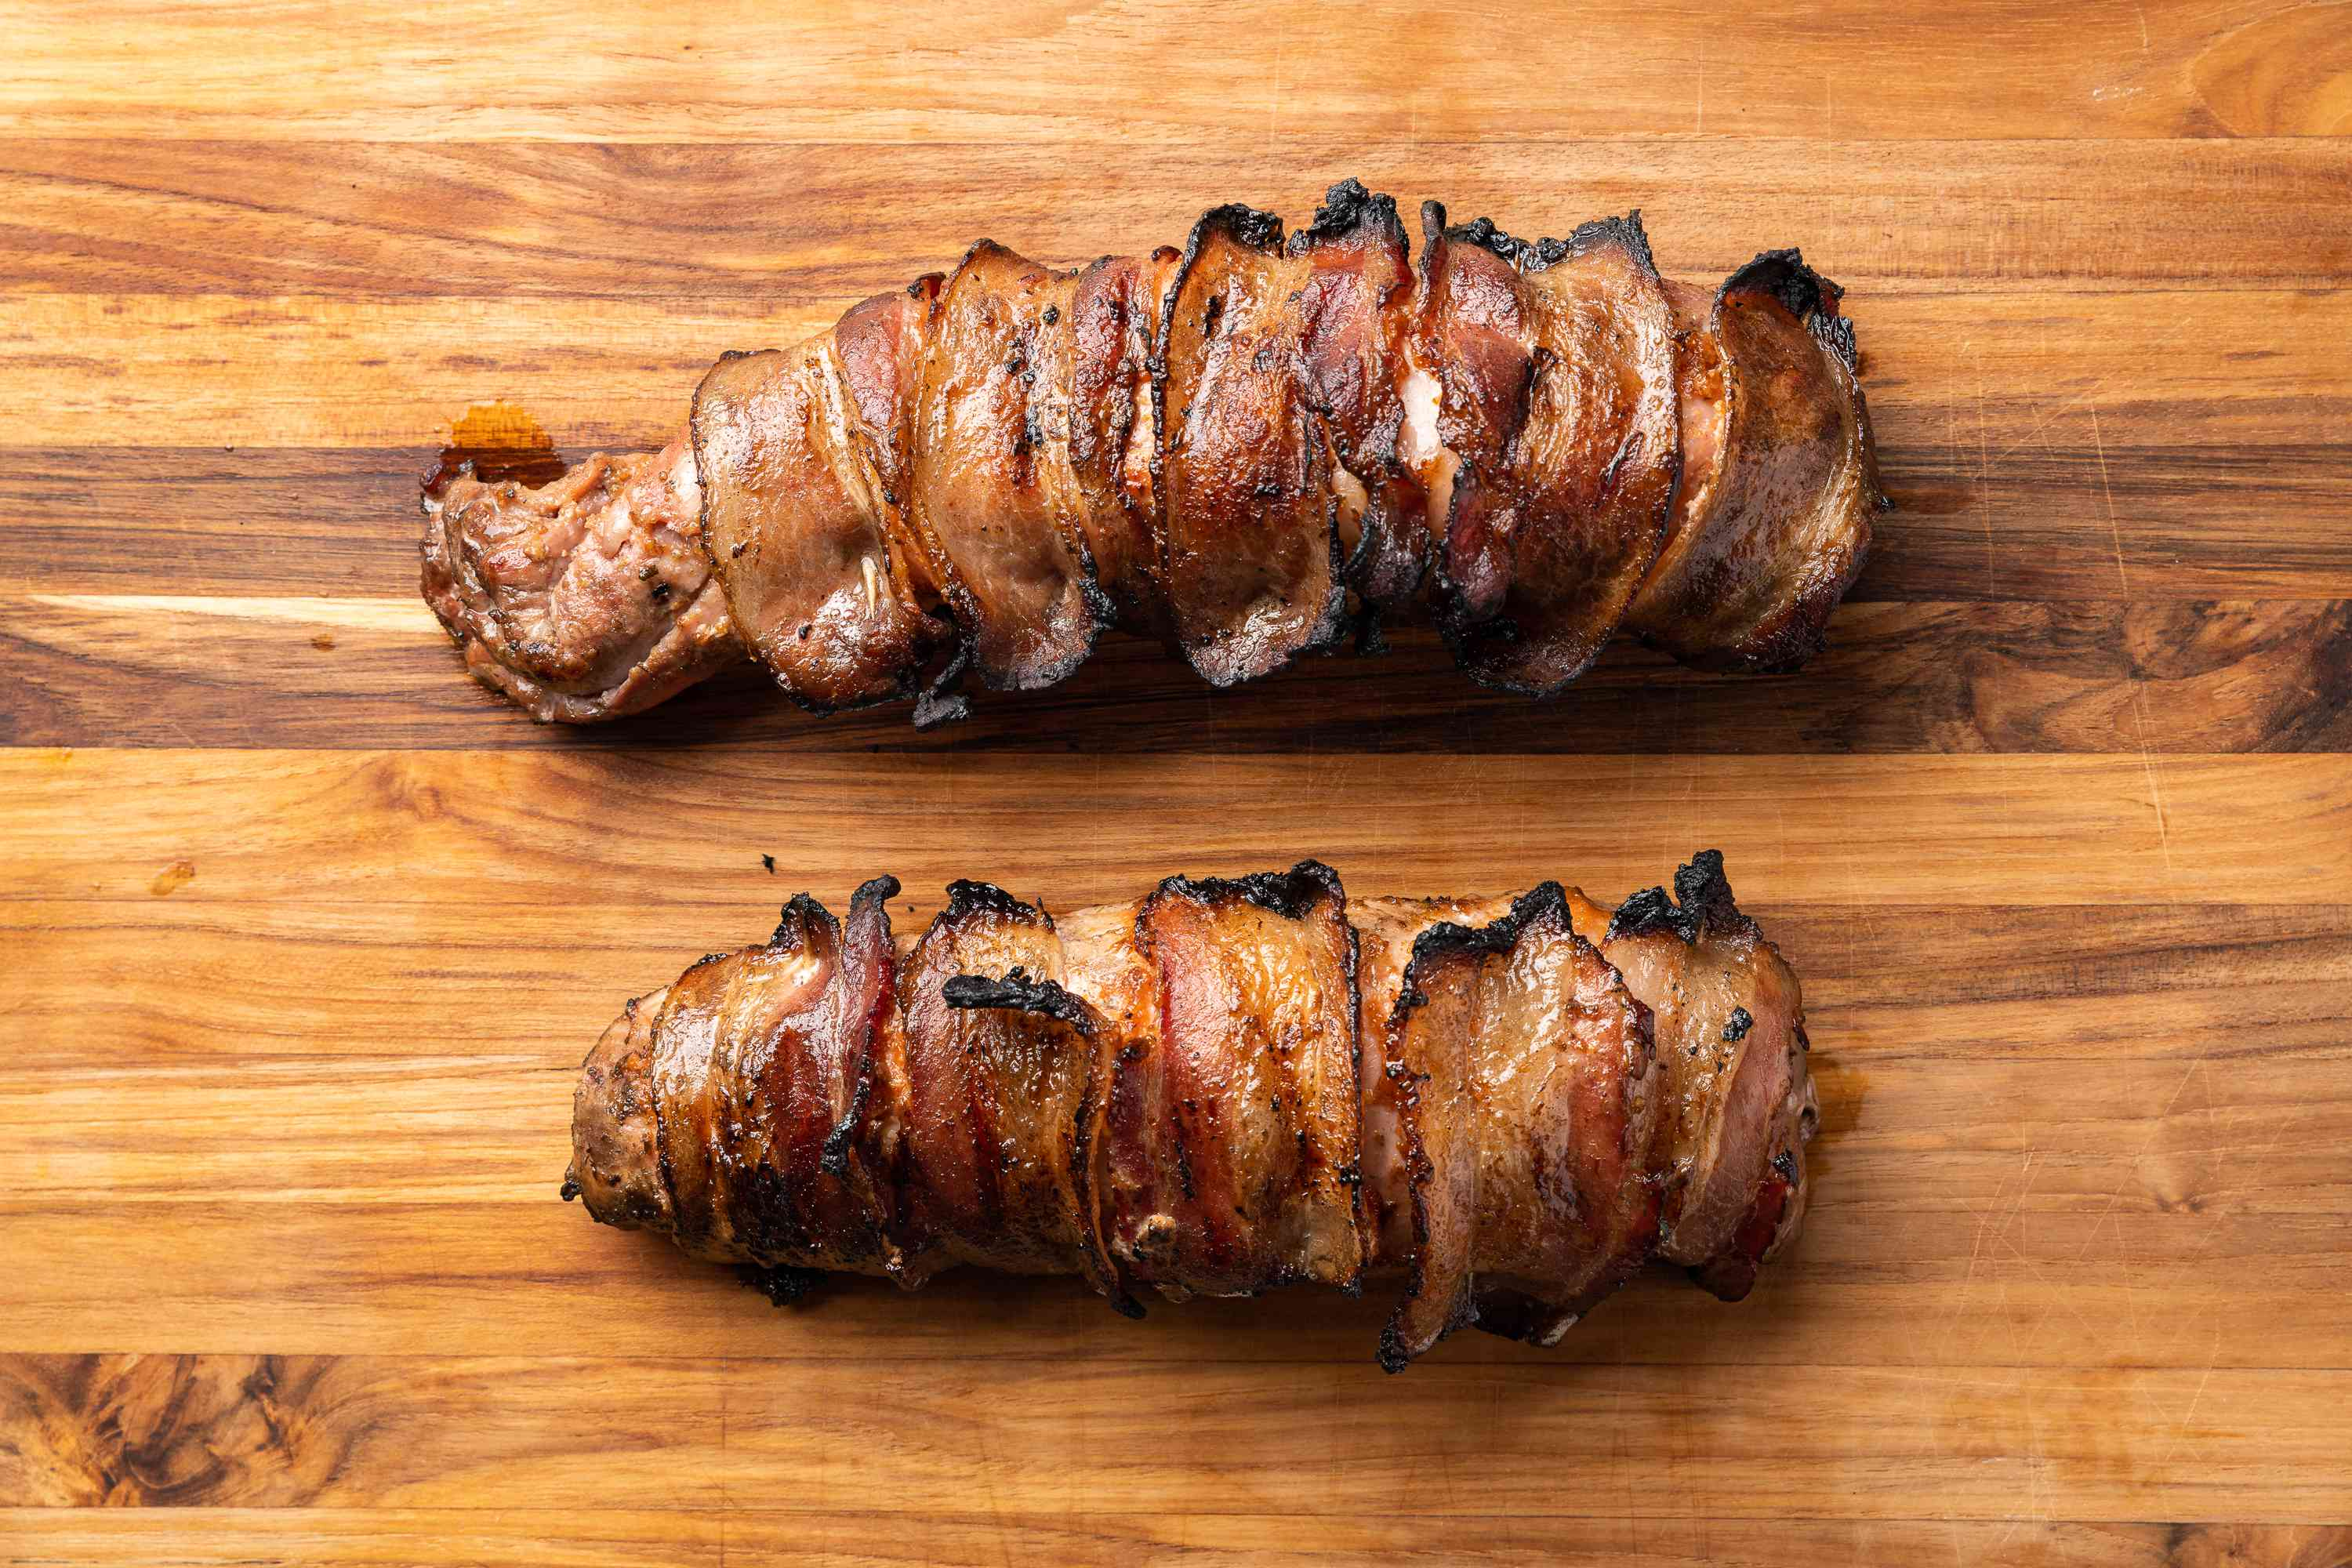 Grilled Bacon-Wrapped Pork Tenderloin on a wood surface